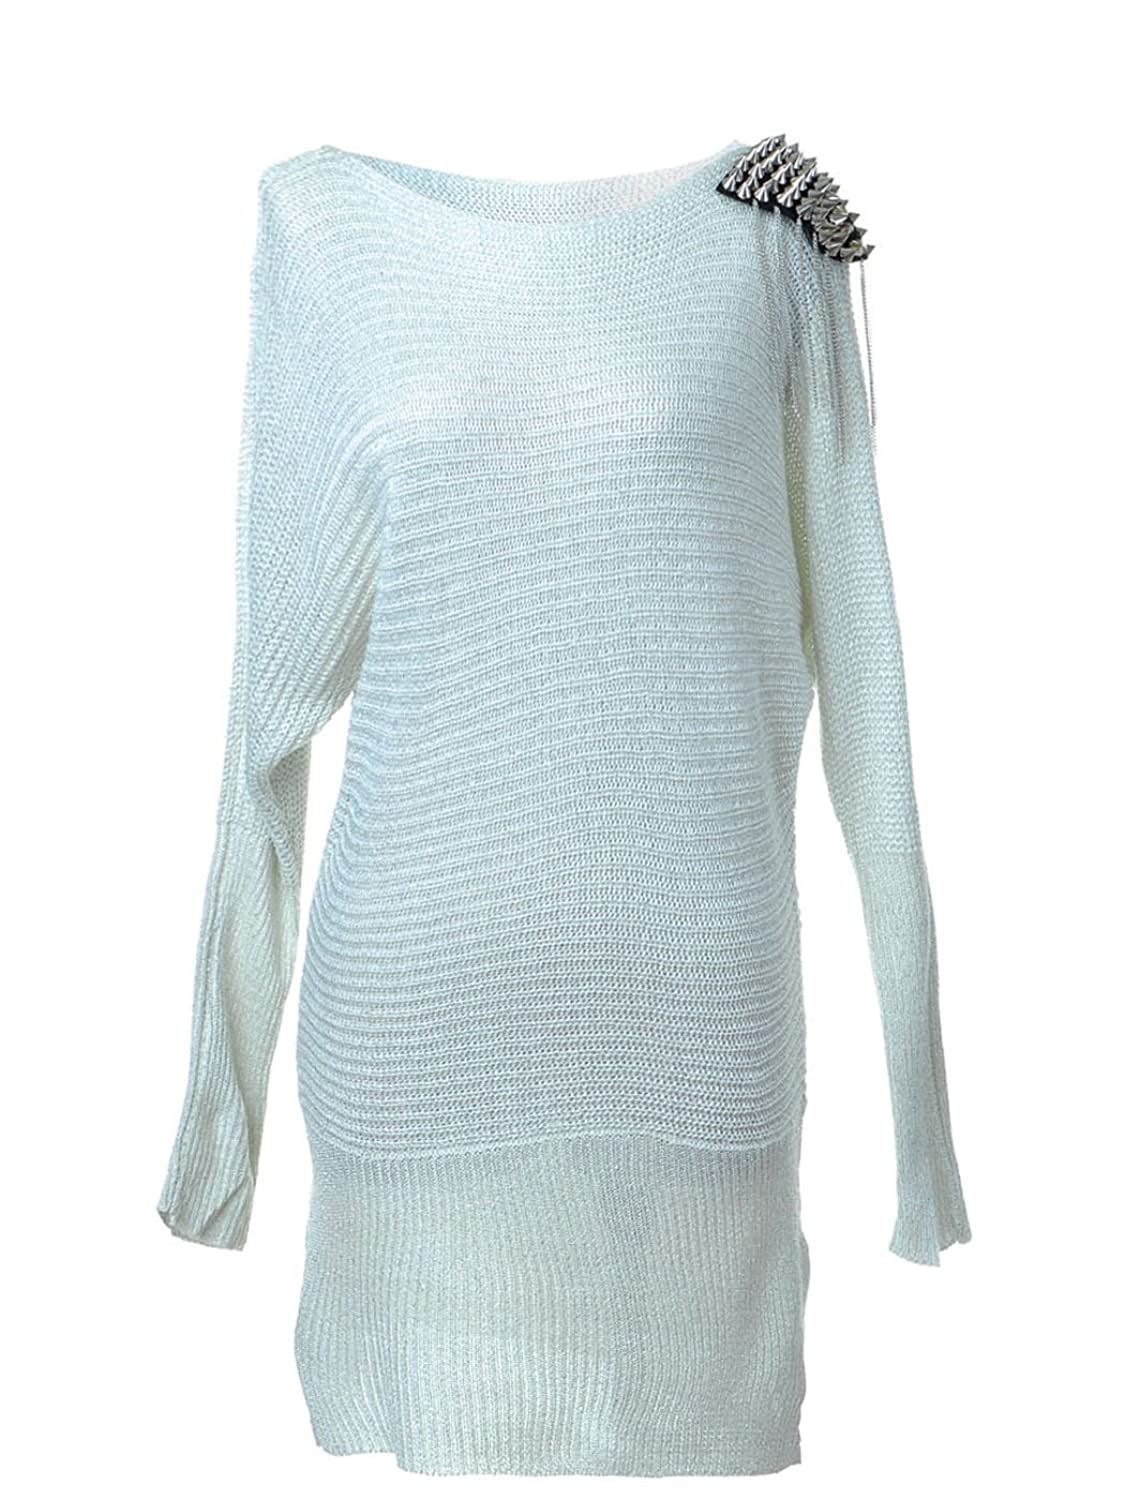 Anna-Kaci S/M Fit White L/S Surprise Spiked Studded Shoulder Detail Tunic Dress